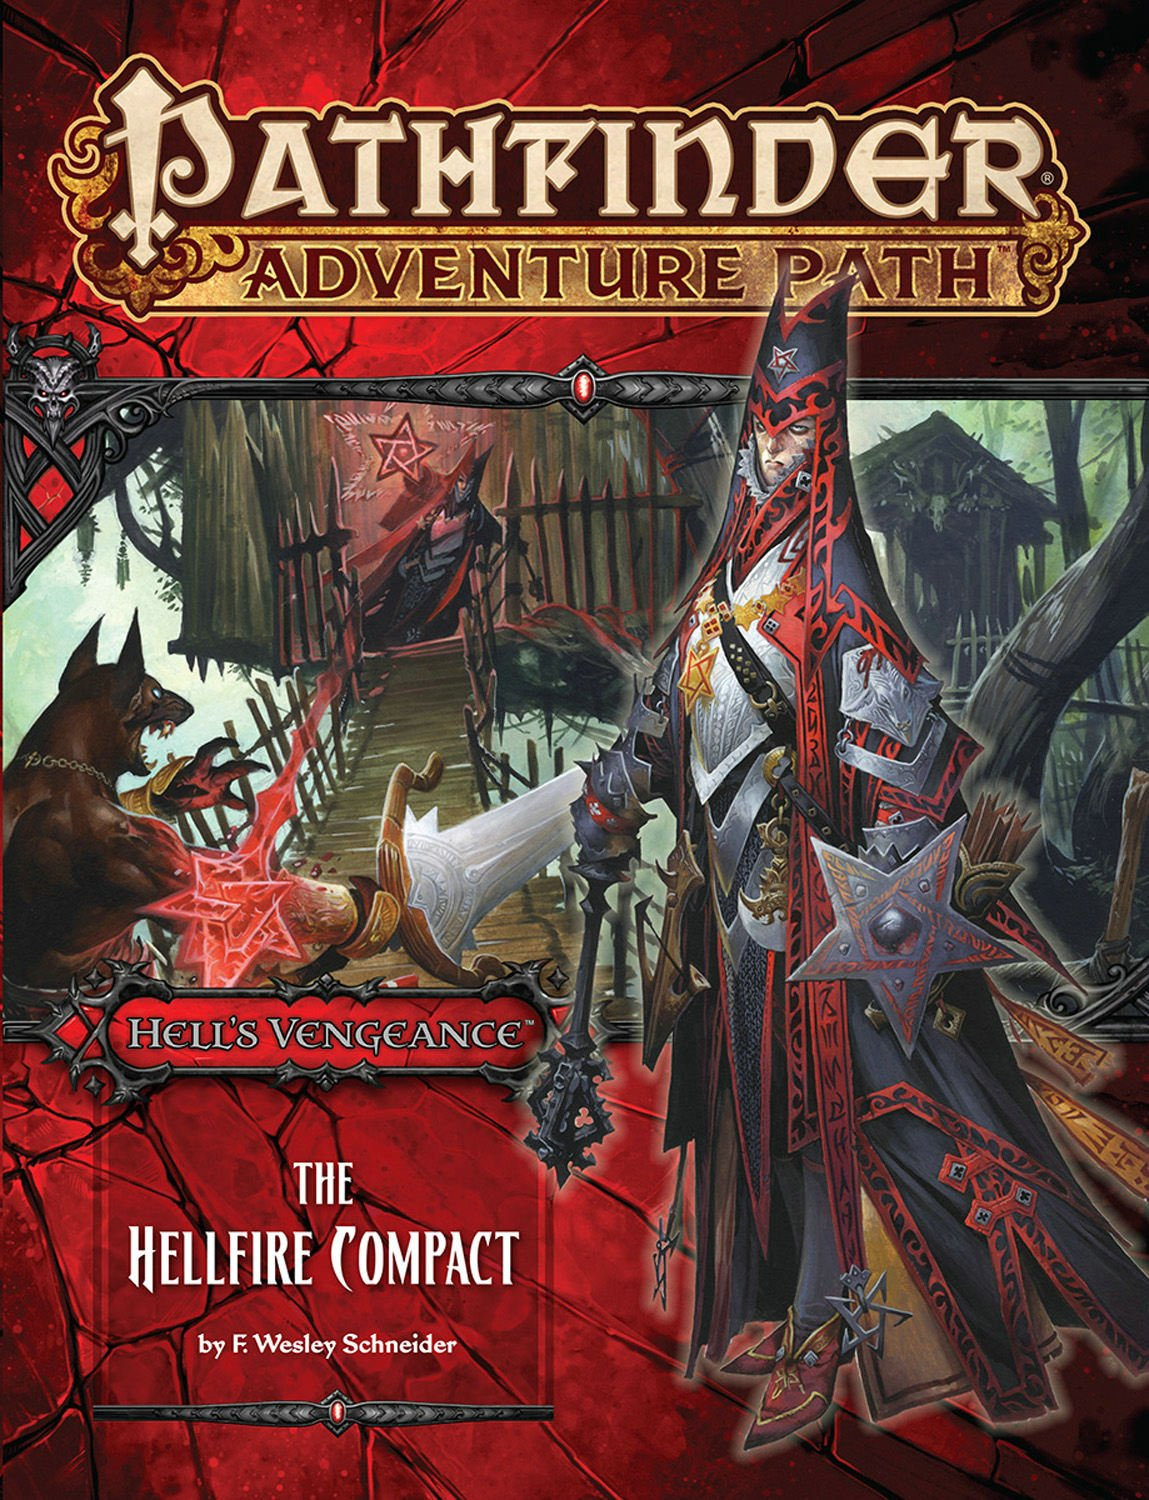 Pathfinder Adventure Path: Hell's Vengeance Part 1 - The Hellfire Compact PDF